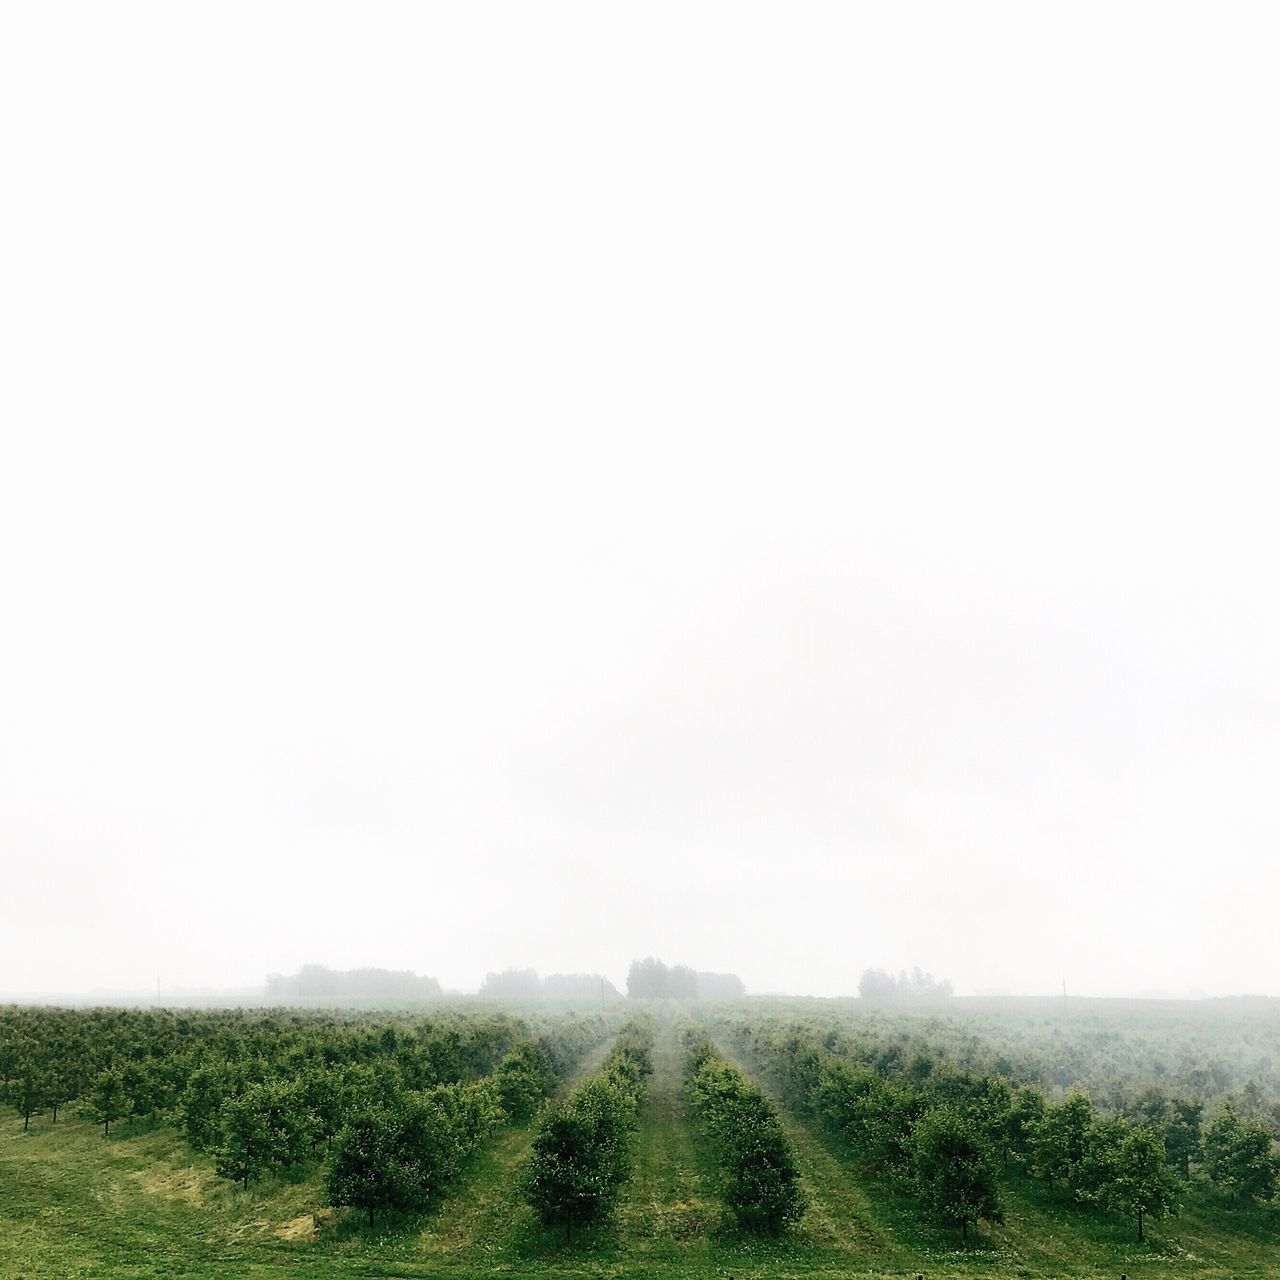 Foggy morning Landscape Nature Tranquility Field Beauty In Nature Agriculture Tranquil Scene Scenics Growth Copy Space Green Color Travel Minimalism Nature_collection Nature Photography Morning Light